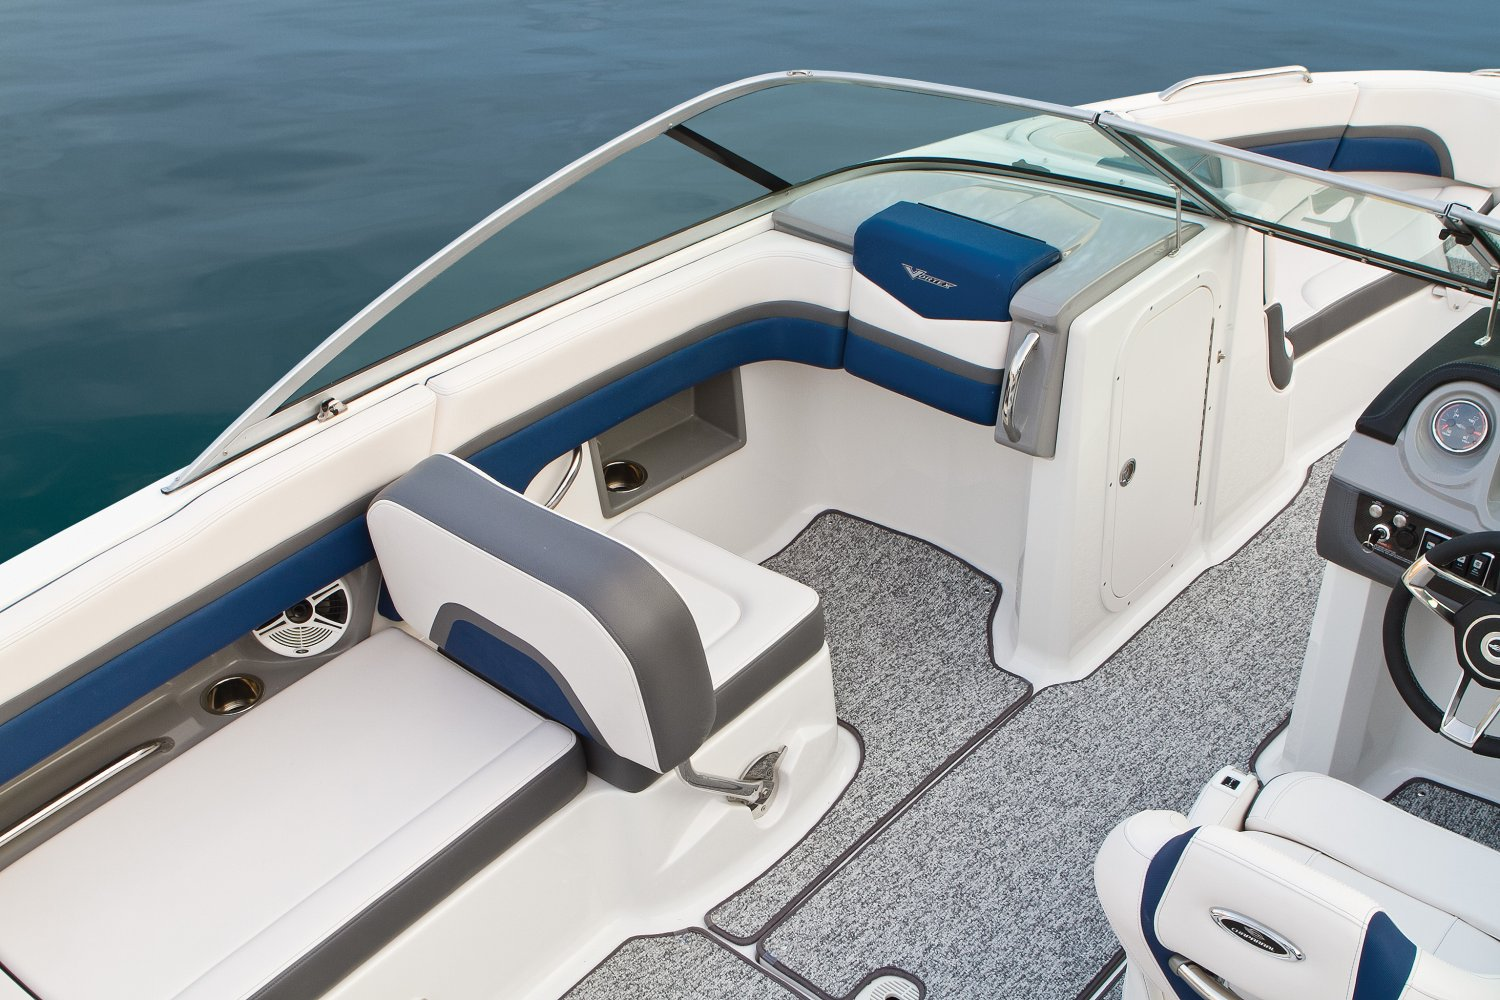 2016 Chaparral boat for sale, model of the boat is 223 VORTEX VR & Image # 6 of 25